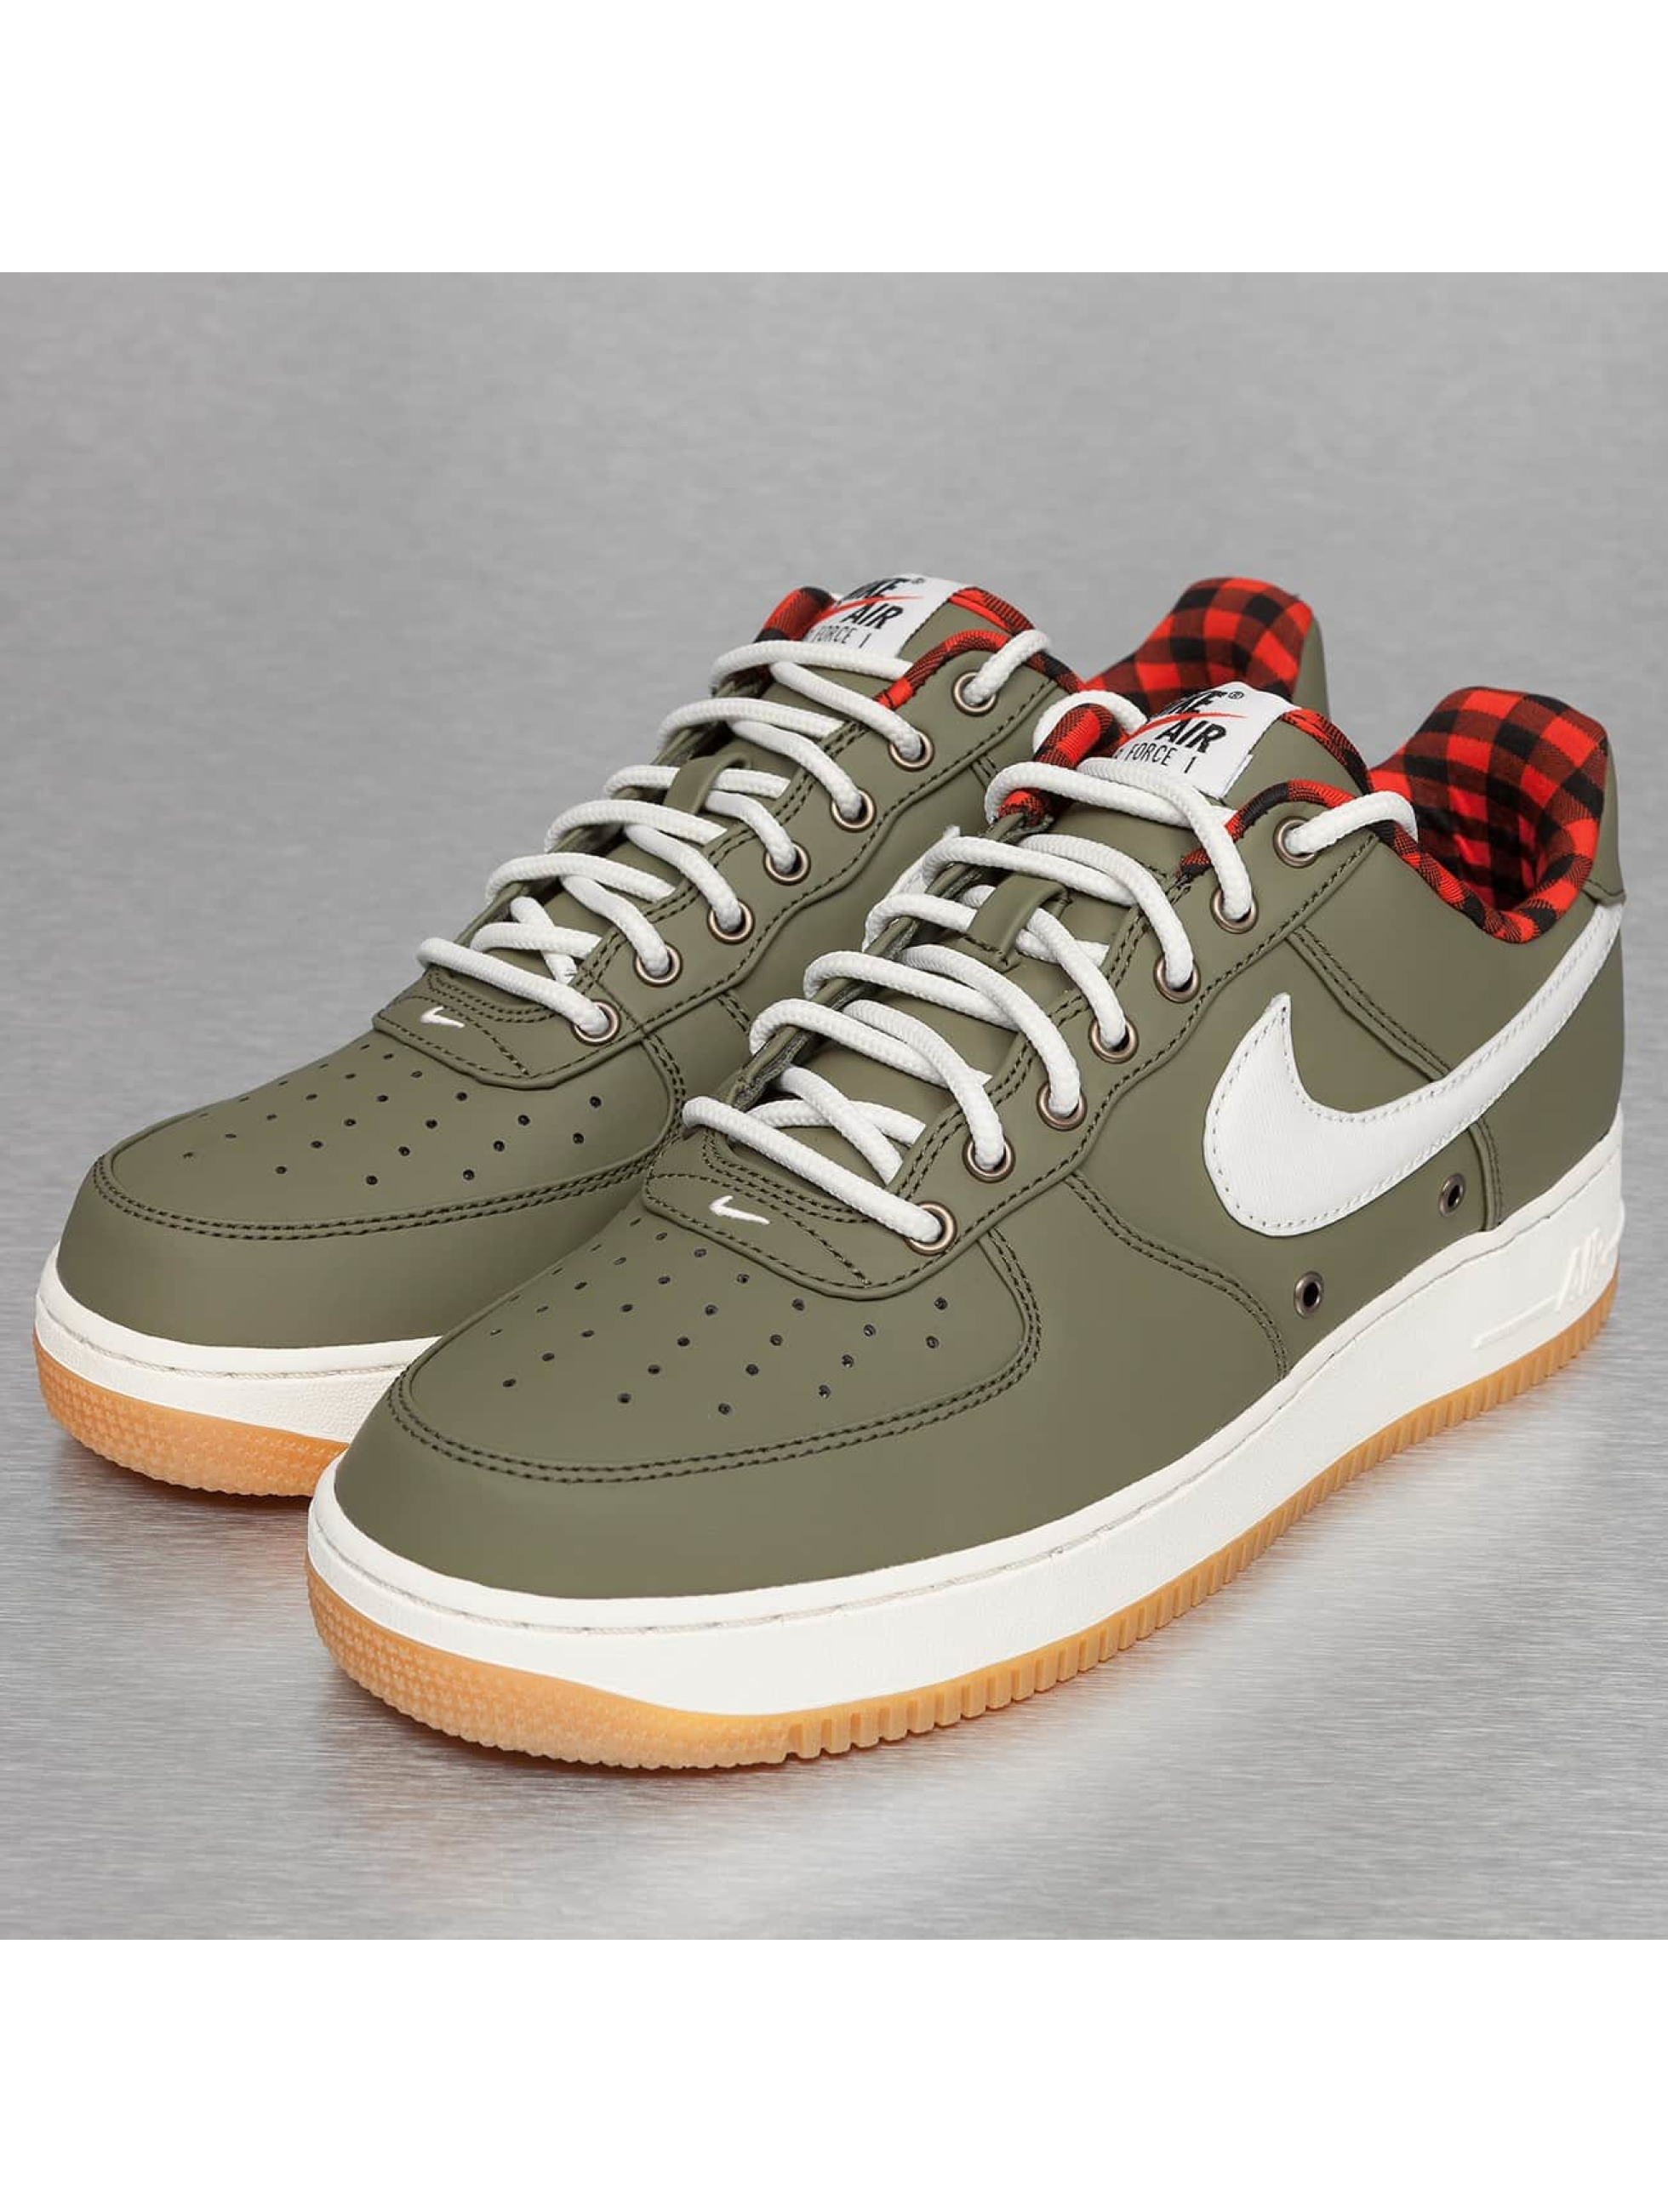 Nike schoen / sneaker Air Force 1 '07 LV8 in olijfgroen